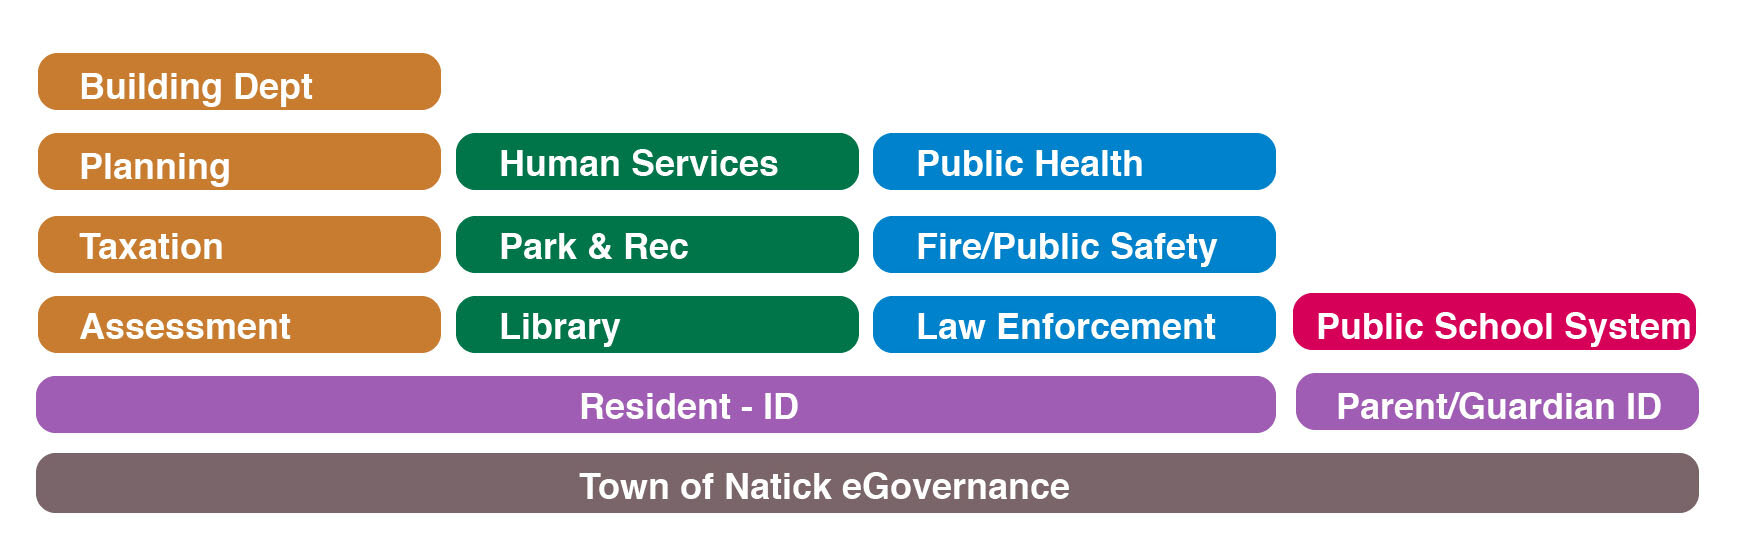 Town of Natick - Potential Data Sharing Stack